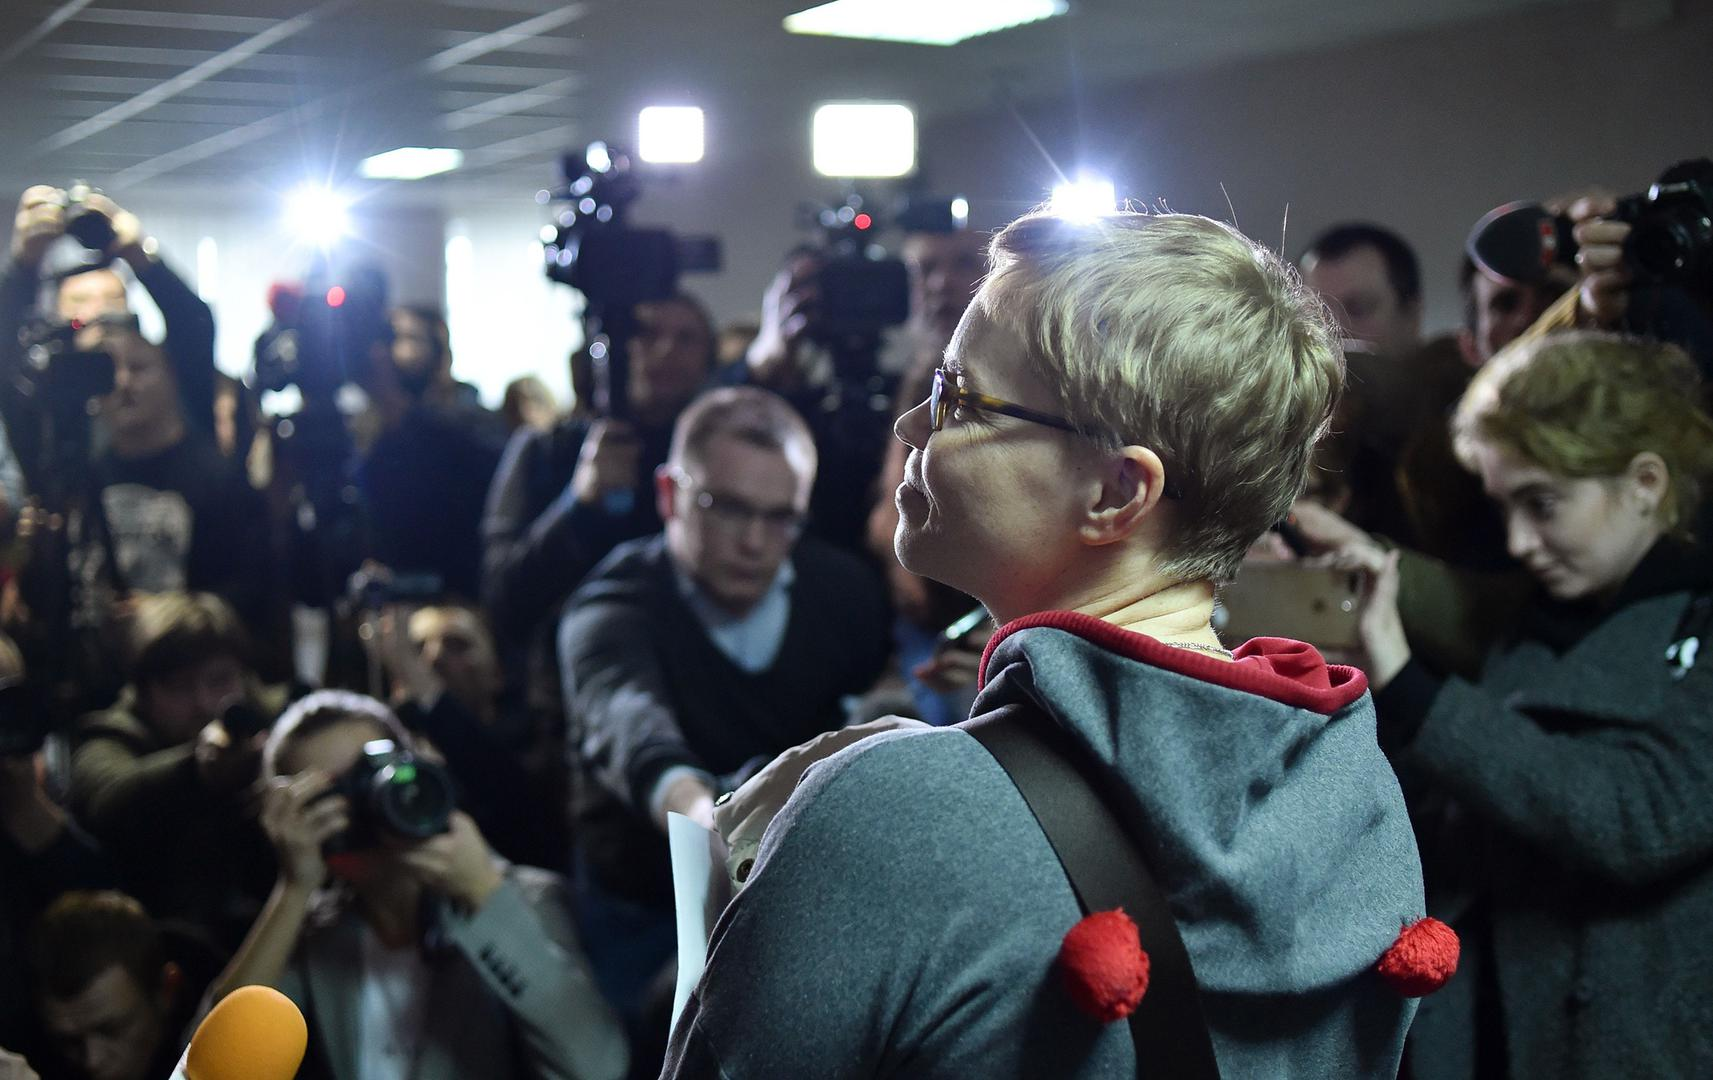 The media photograph Marina Zolotova, editor-in-chief of news portal tut.by, as she attends her trial for alleged 'unauthorised access' to information from state-run BelTA news agency, in Minsk, March 4, 2019. © 2019 SERGEI GAPON/AFP/Getty Images